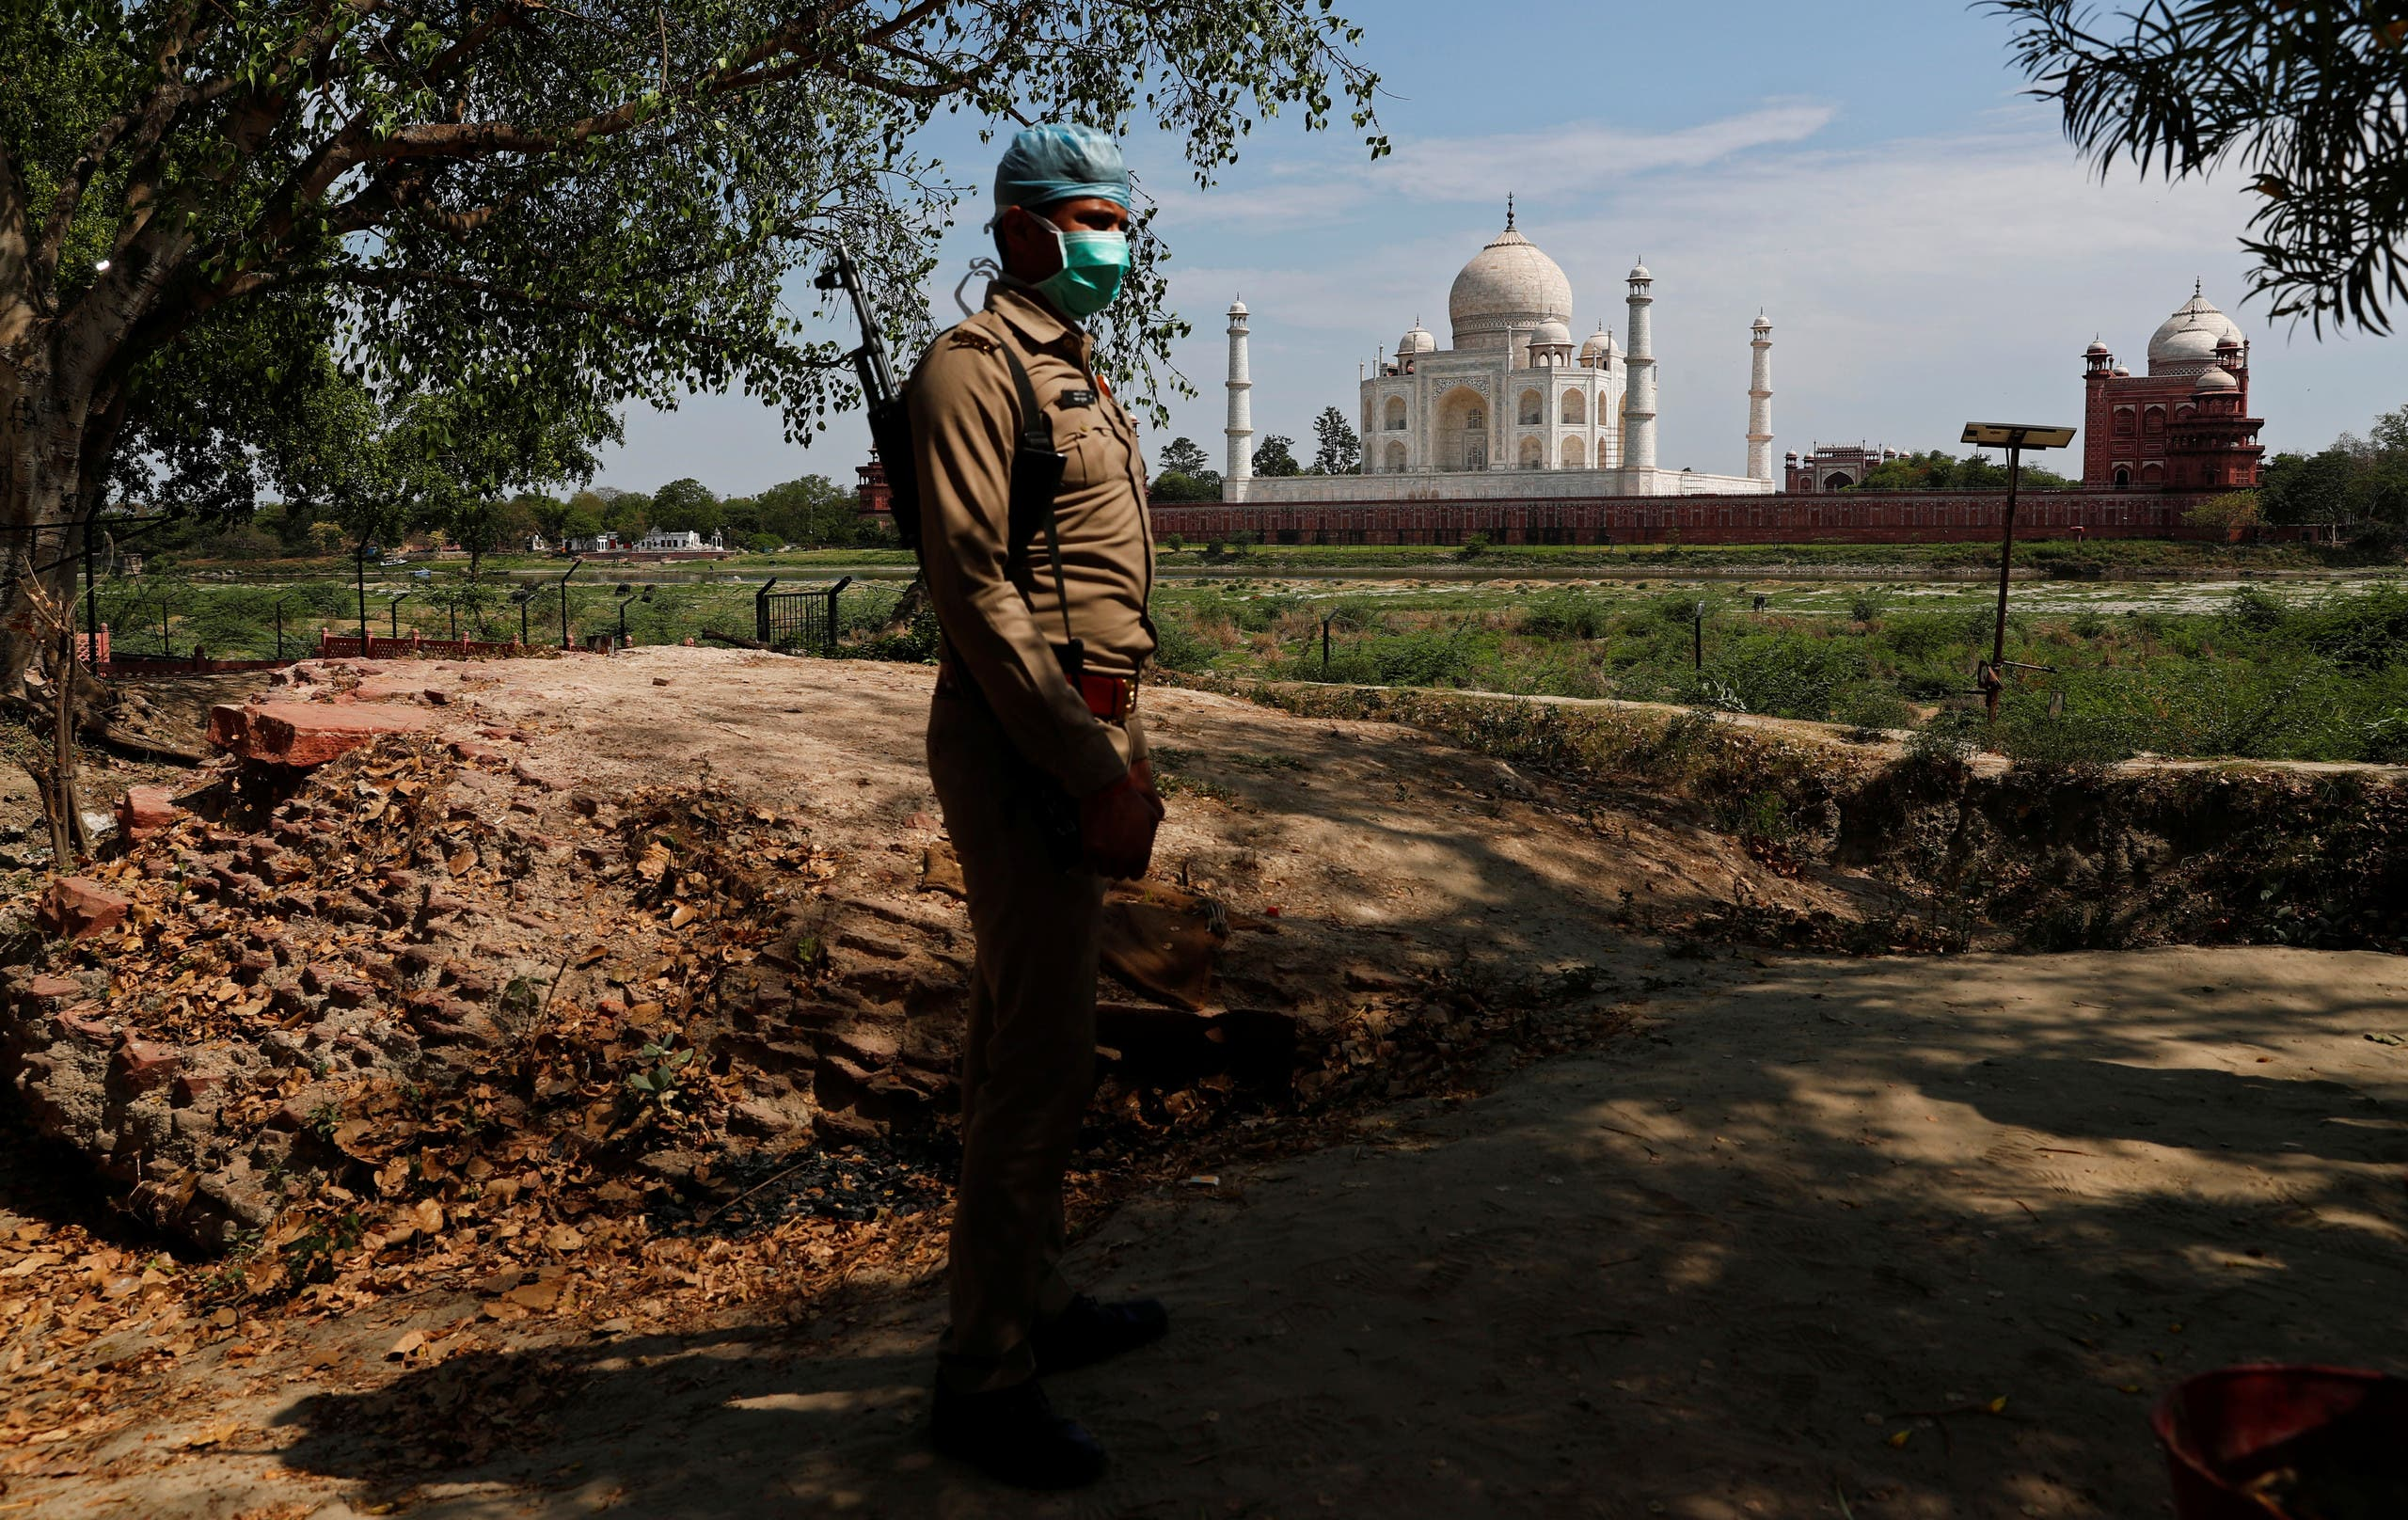 A policeman stands guard near the historic Taj Mahal during a nationwide lockdown to slow the spread of the coronavirus, in Agra, India, April 23, 2020. (Reuters)